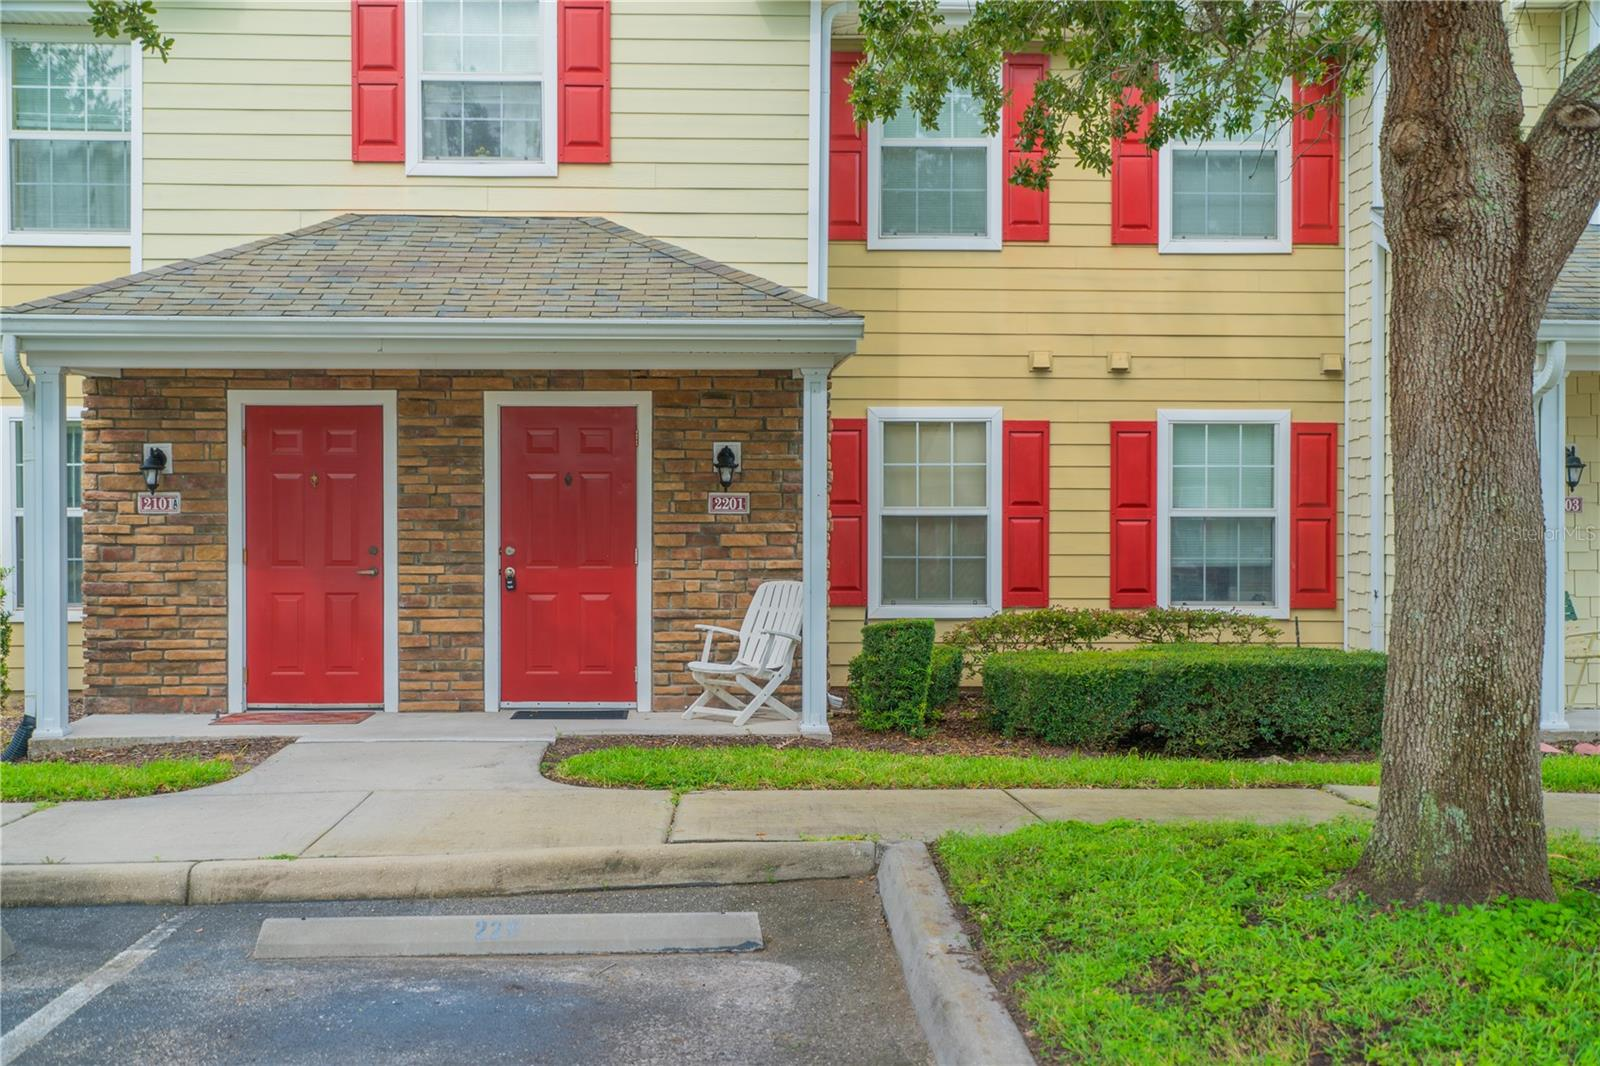 Primary photo of recently sold MLS# A4511778